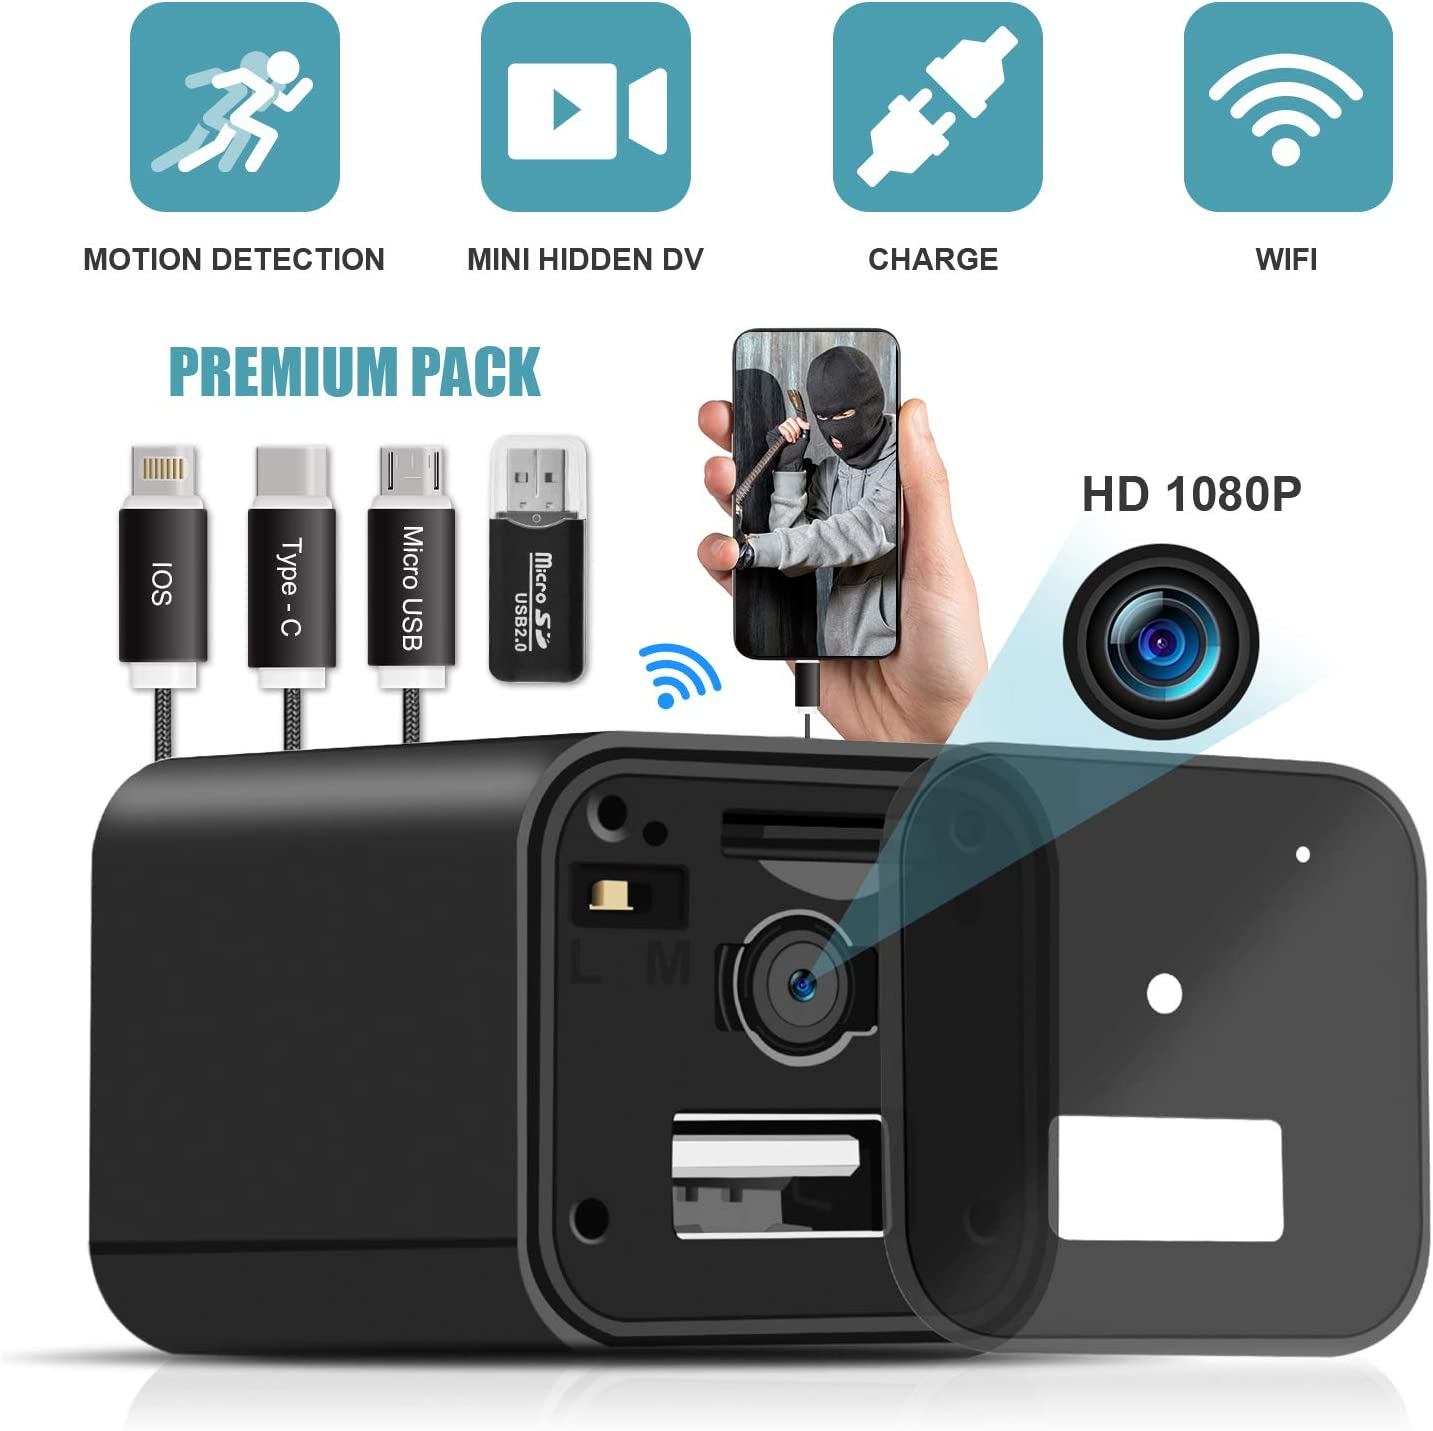 USB Spy Camera Charger,WiFi Hidden Camera Charger,Spy Camera Wireless Hidden 1080P HD Live Streaming with App, Nanny Cam Motion Activated,Supports 128GB Card,Works with iOS and Android 2019 Upgrade